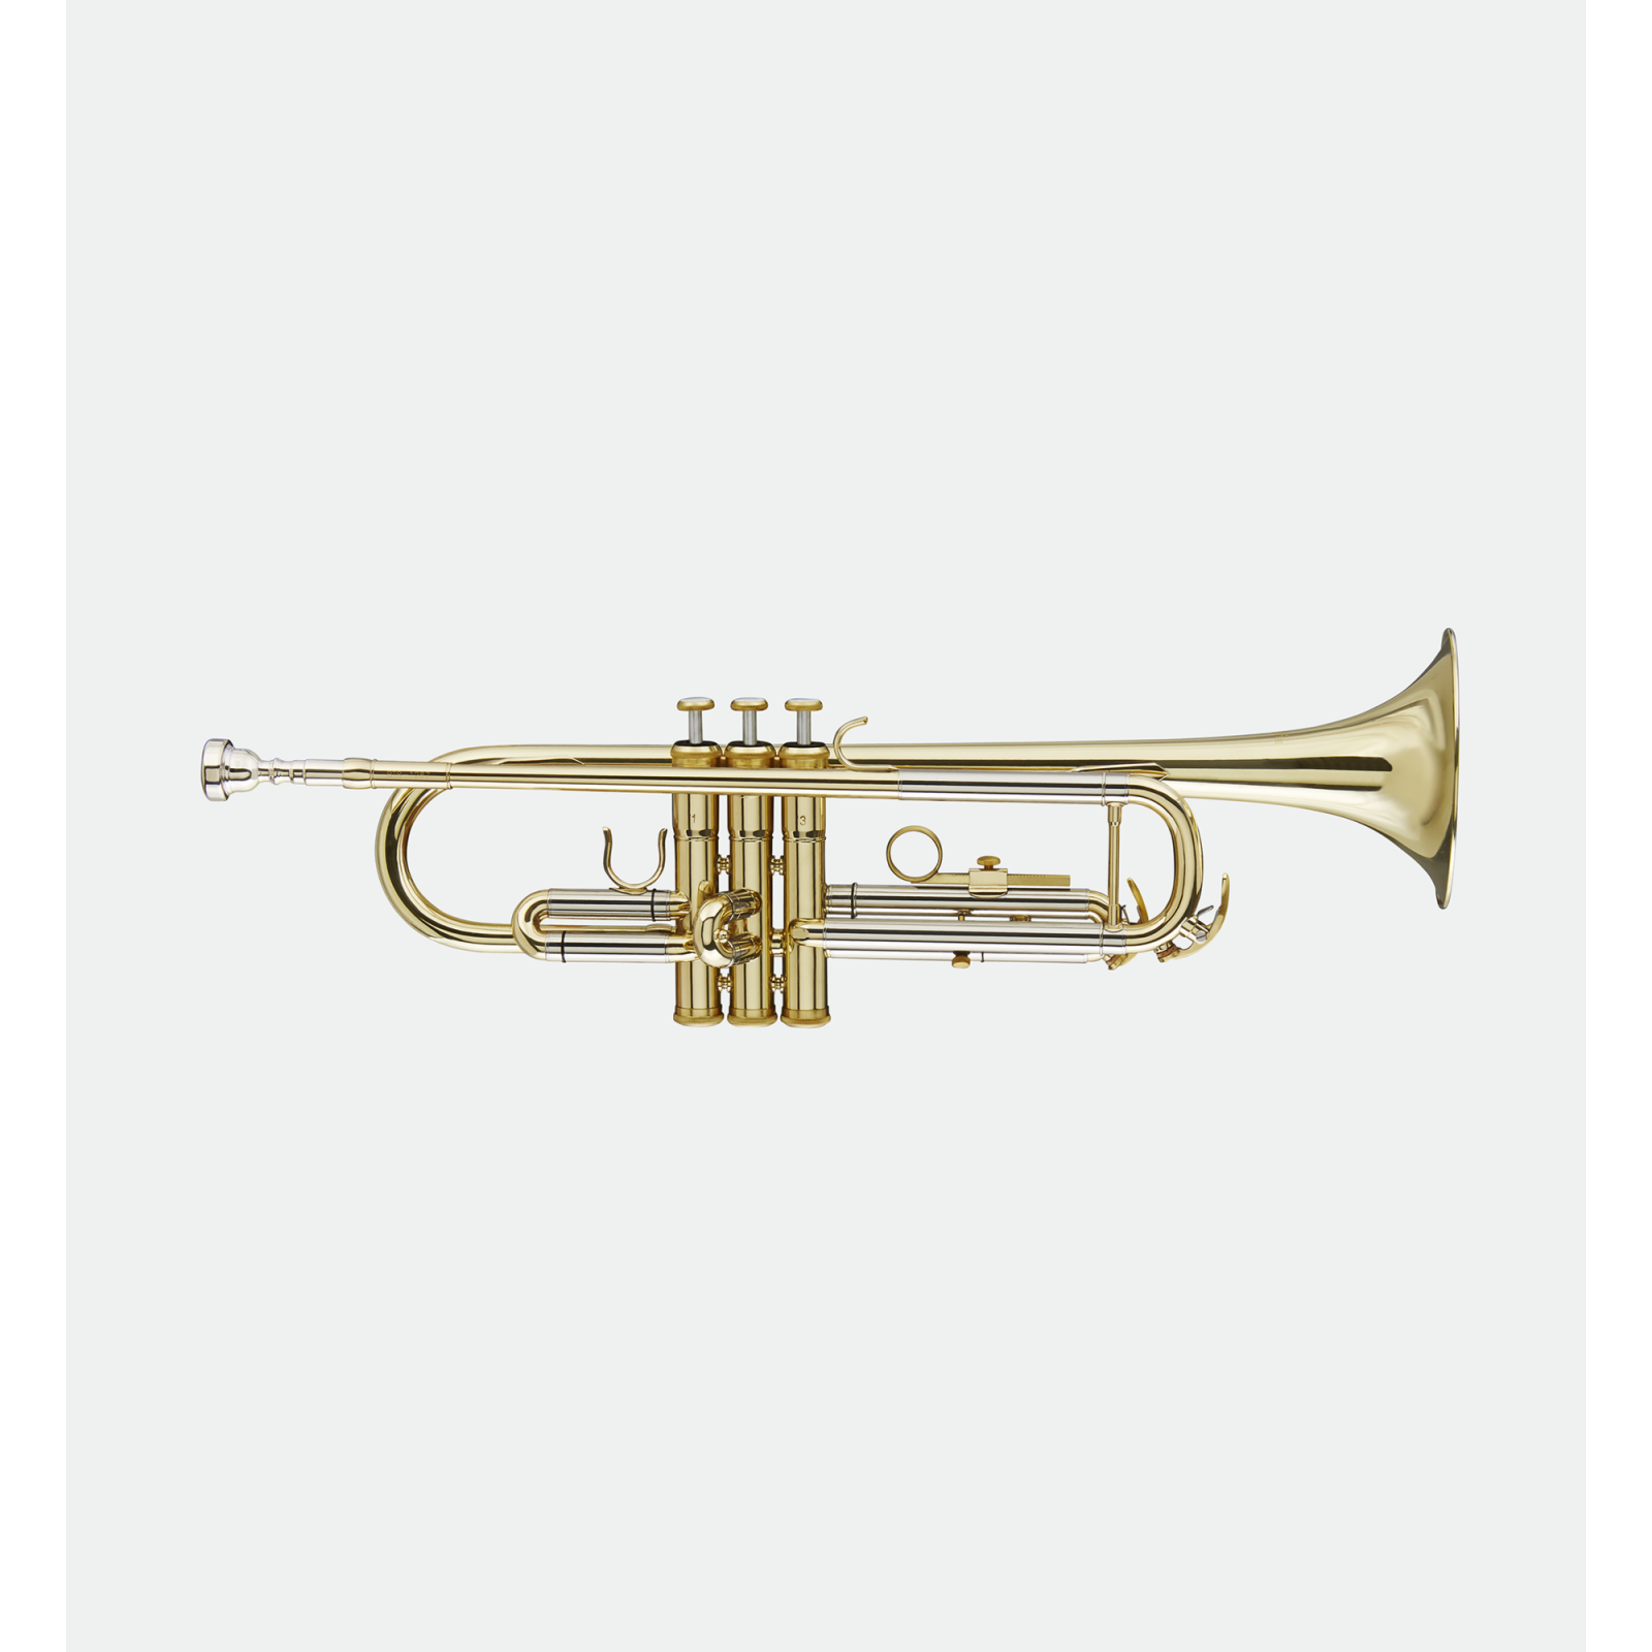 Blessing Blessing BTR-1287 Bb Trumpet w/ Case